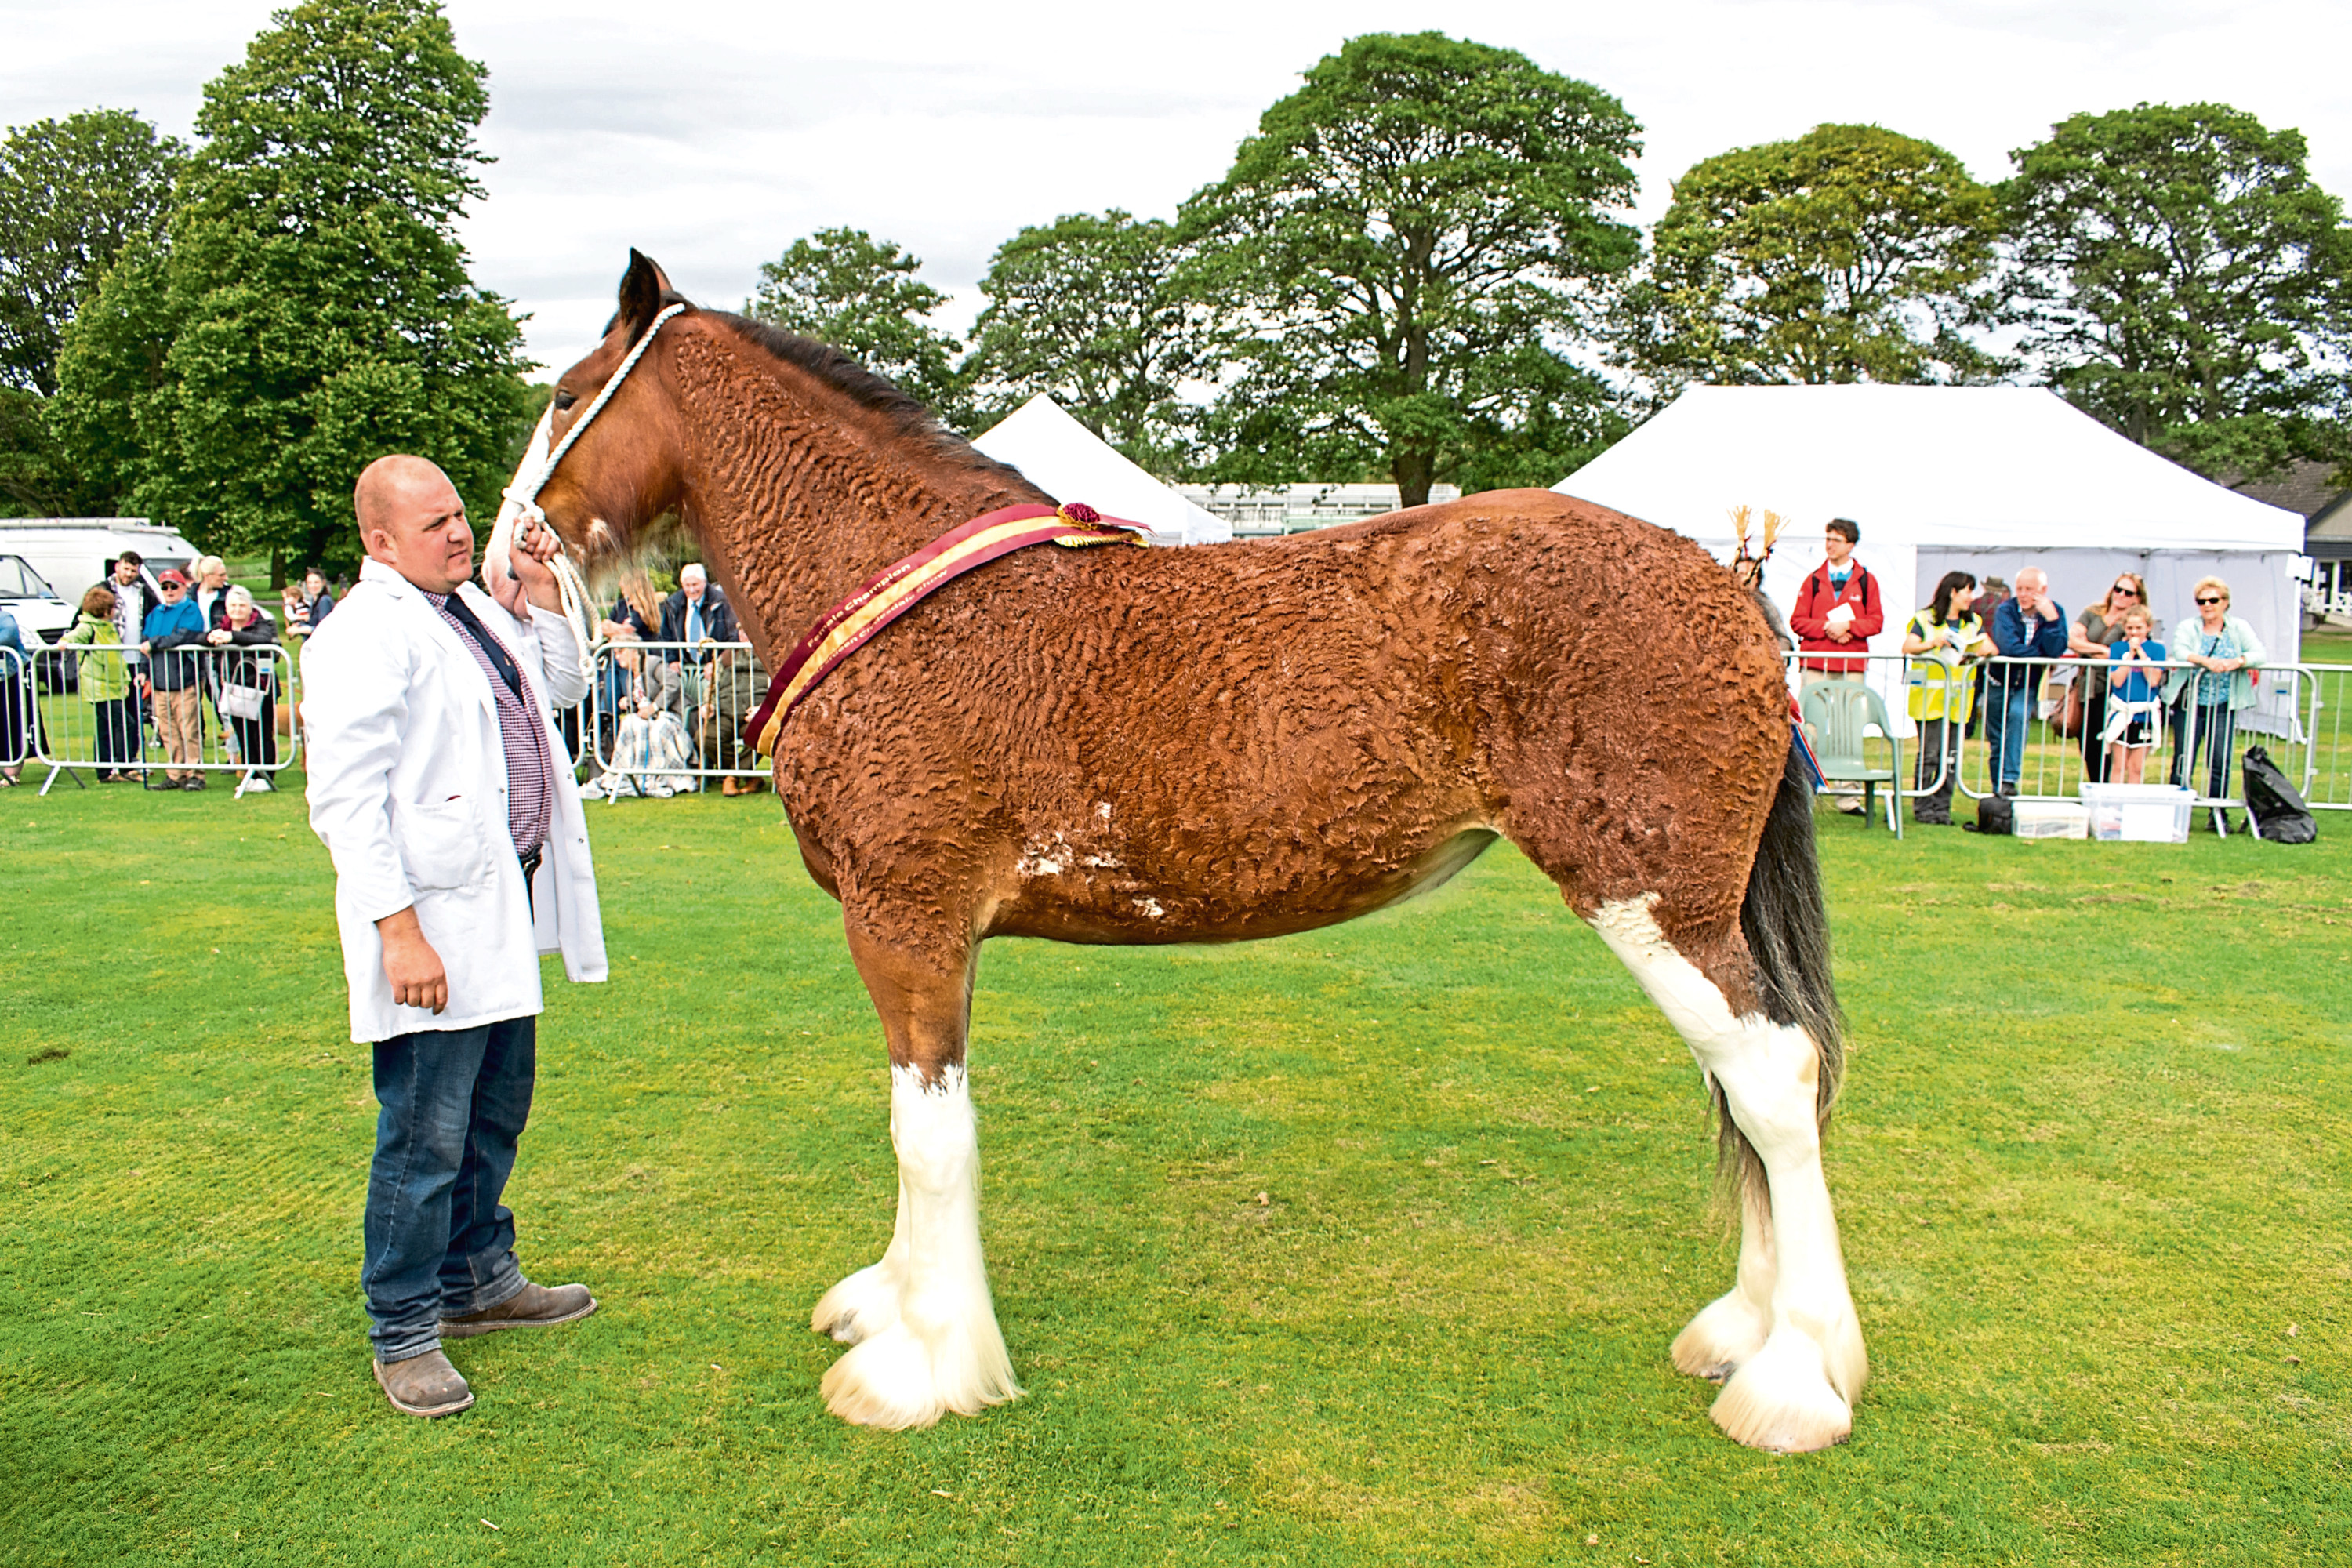 Muirton Belle with owner Blair Warburton of Forfar. Photo by kind permission of Tahr Media.